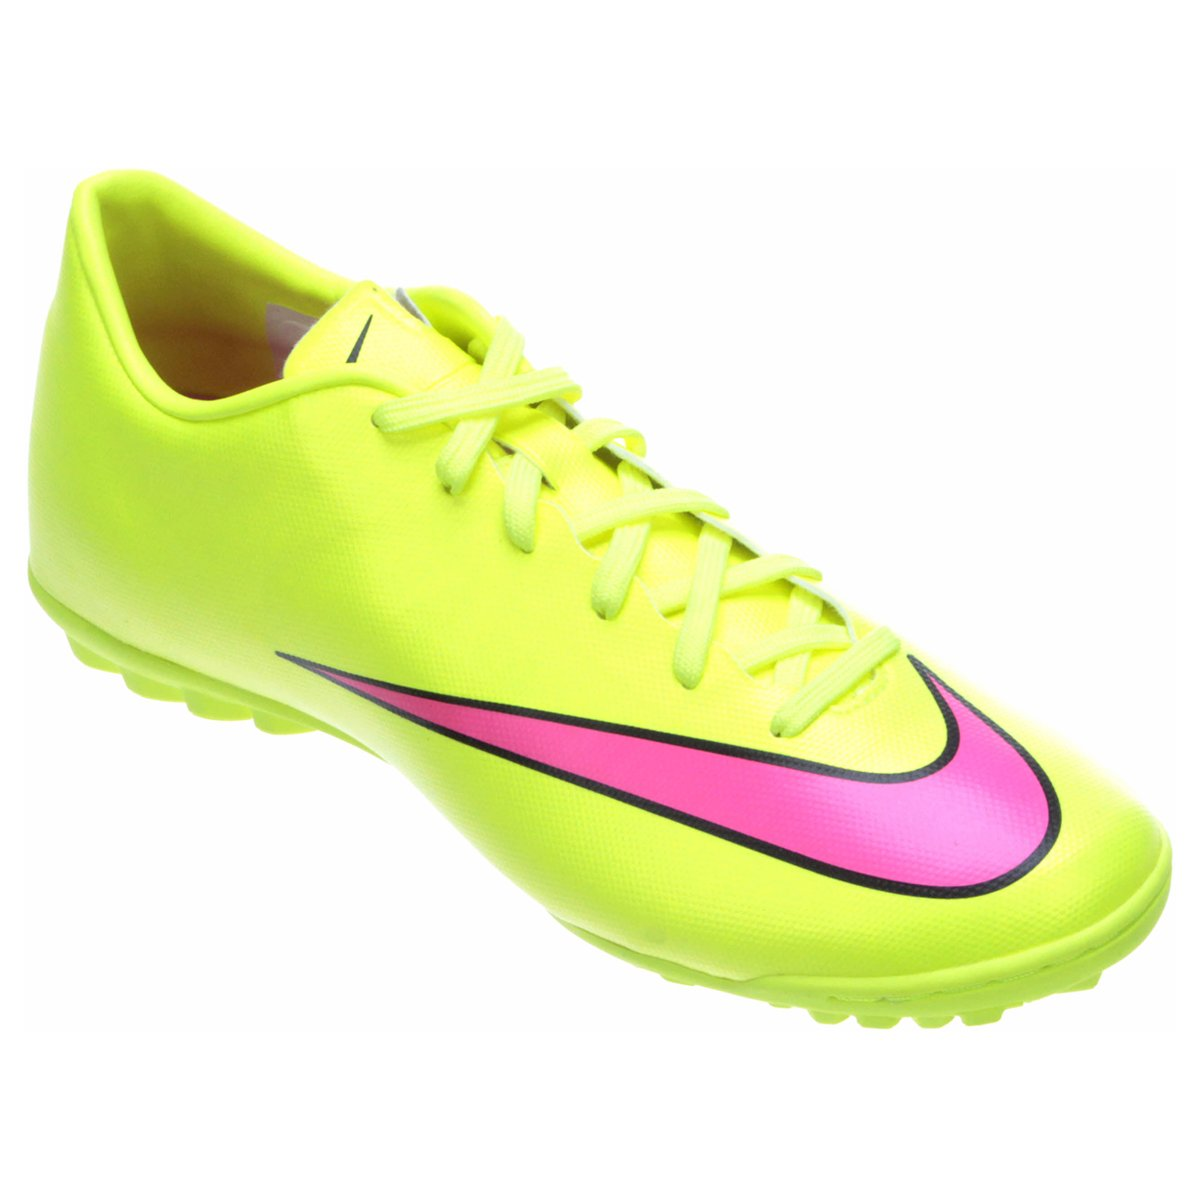 487e4c389caab ... coupon for chuteira society nike mercurial victory 5 tf masculina verde  limo e pink 772e4 86795